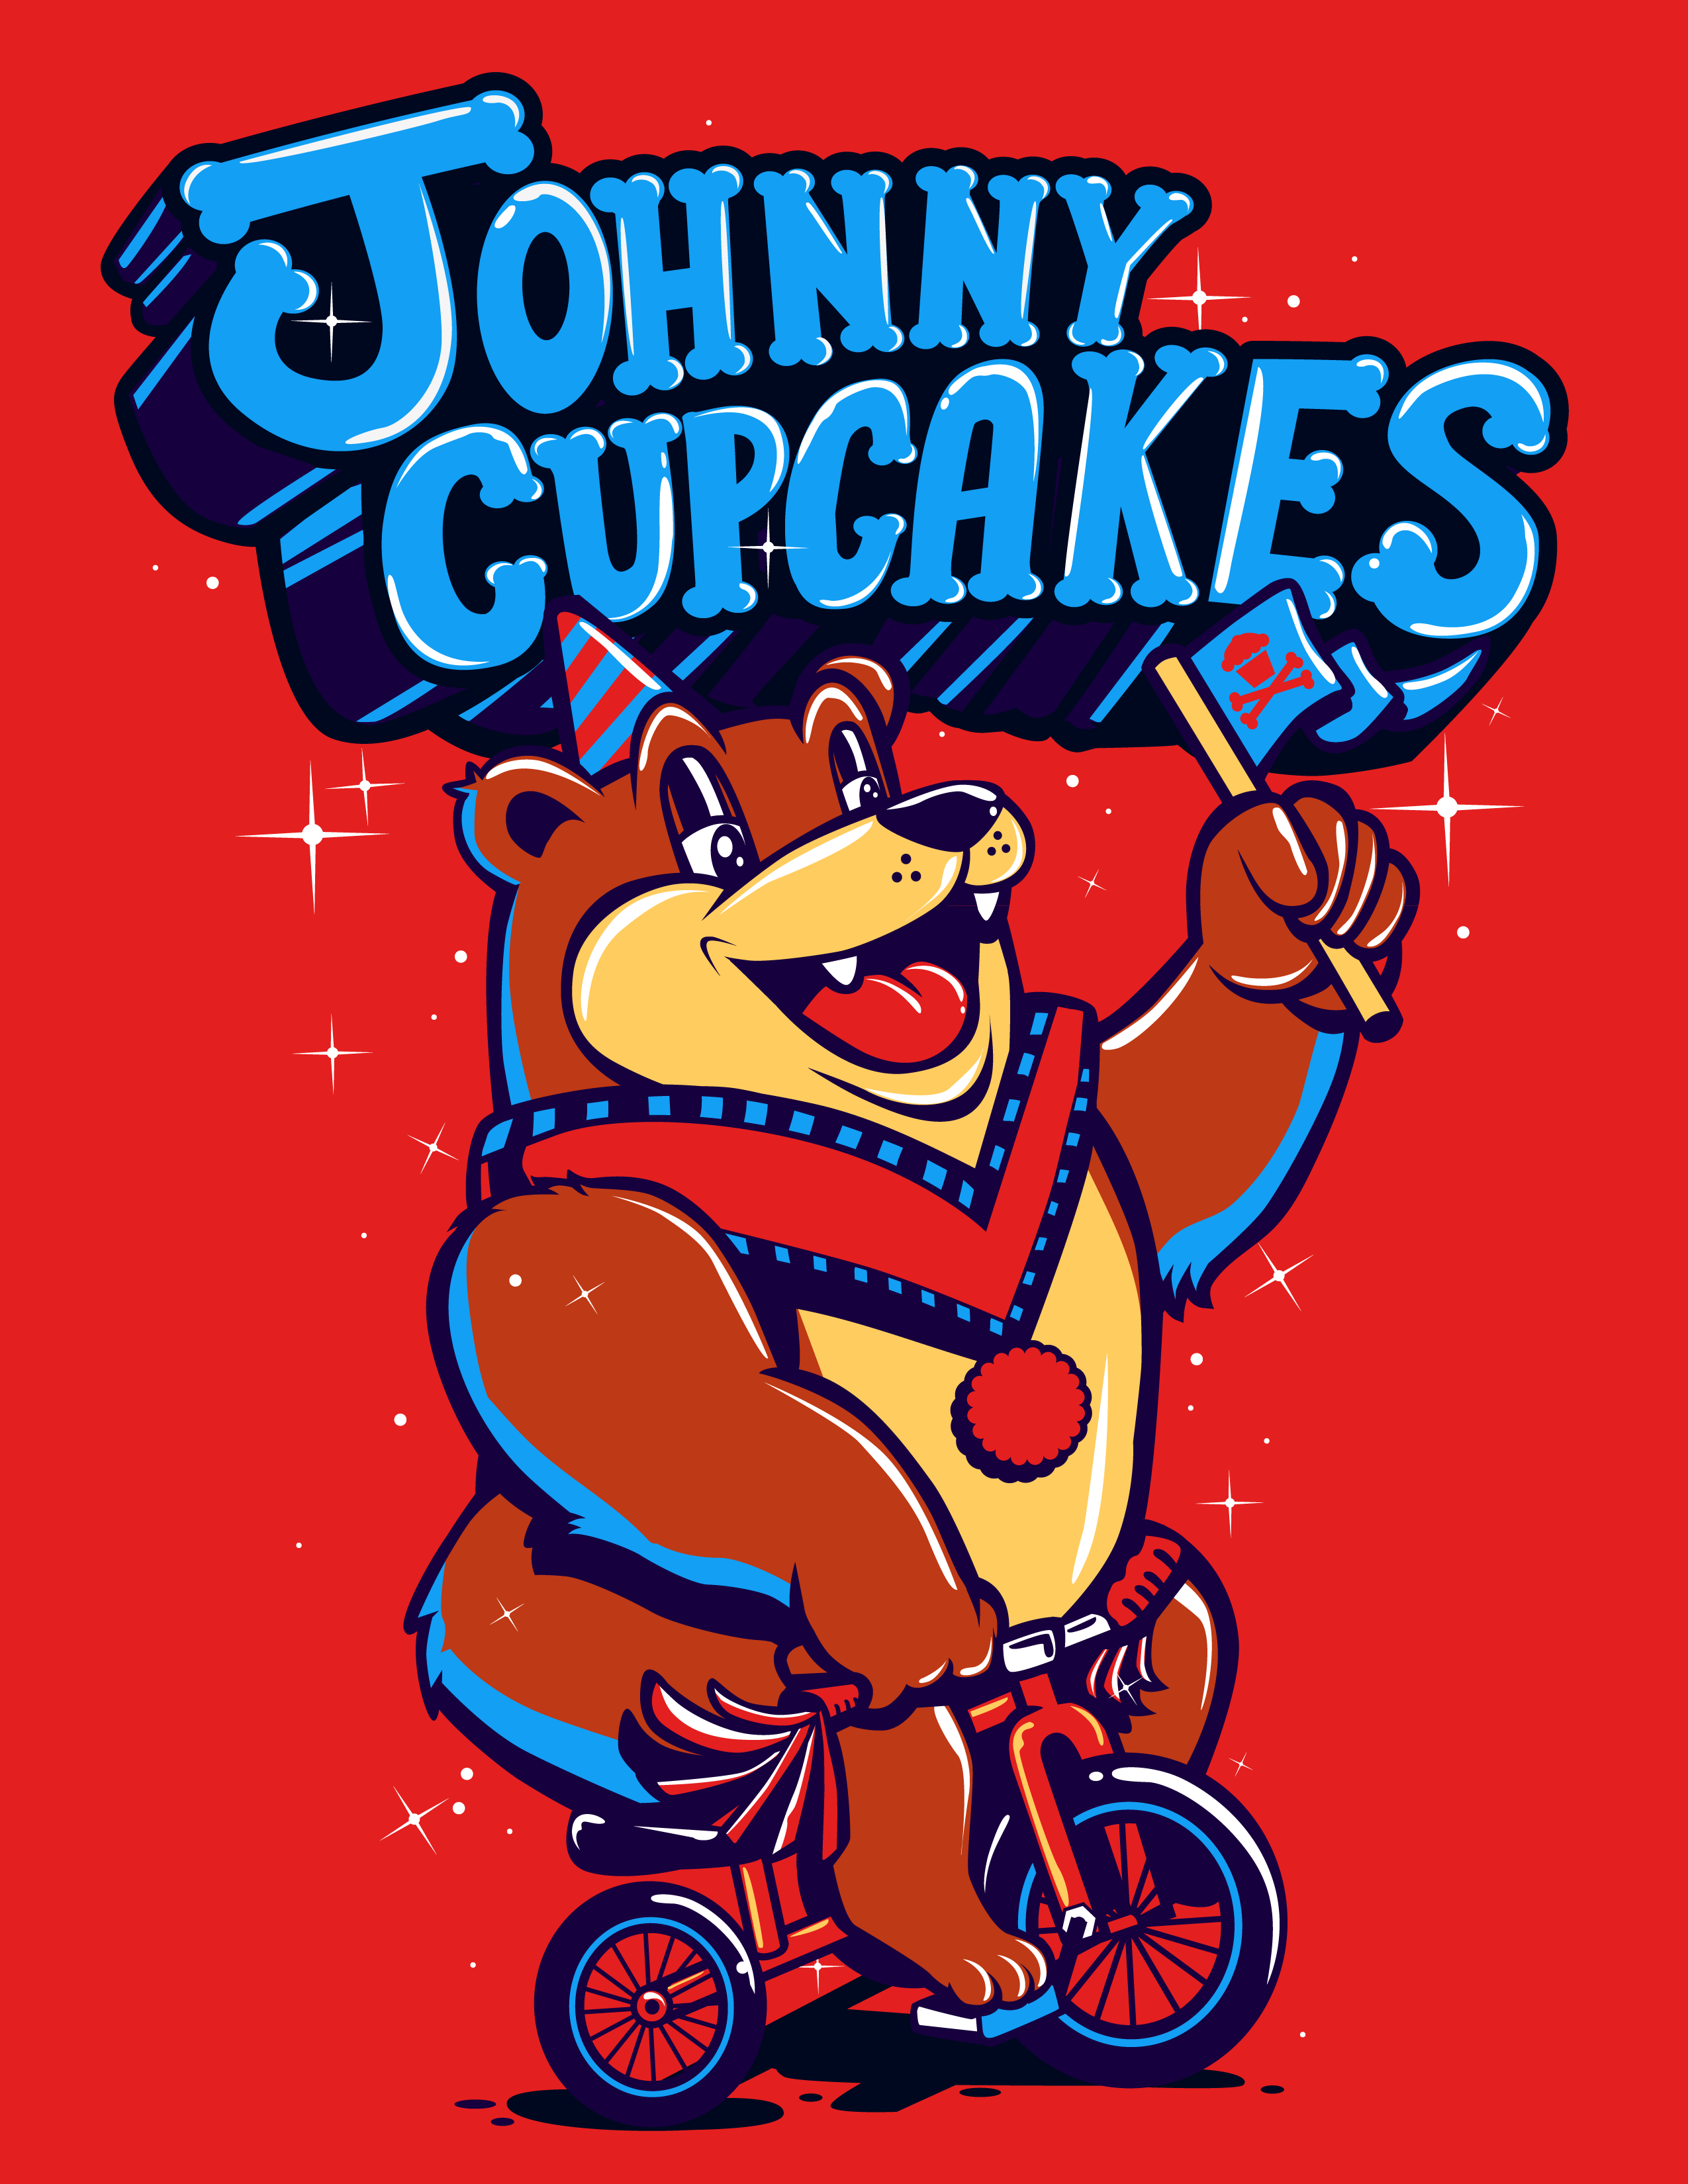 Sugar Coated x Johnny Cupcakes  - image 3 - student project